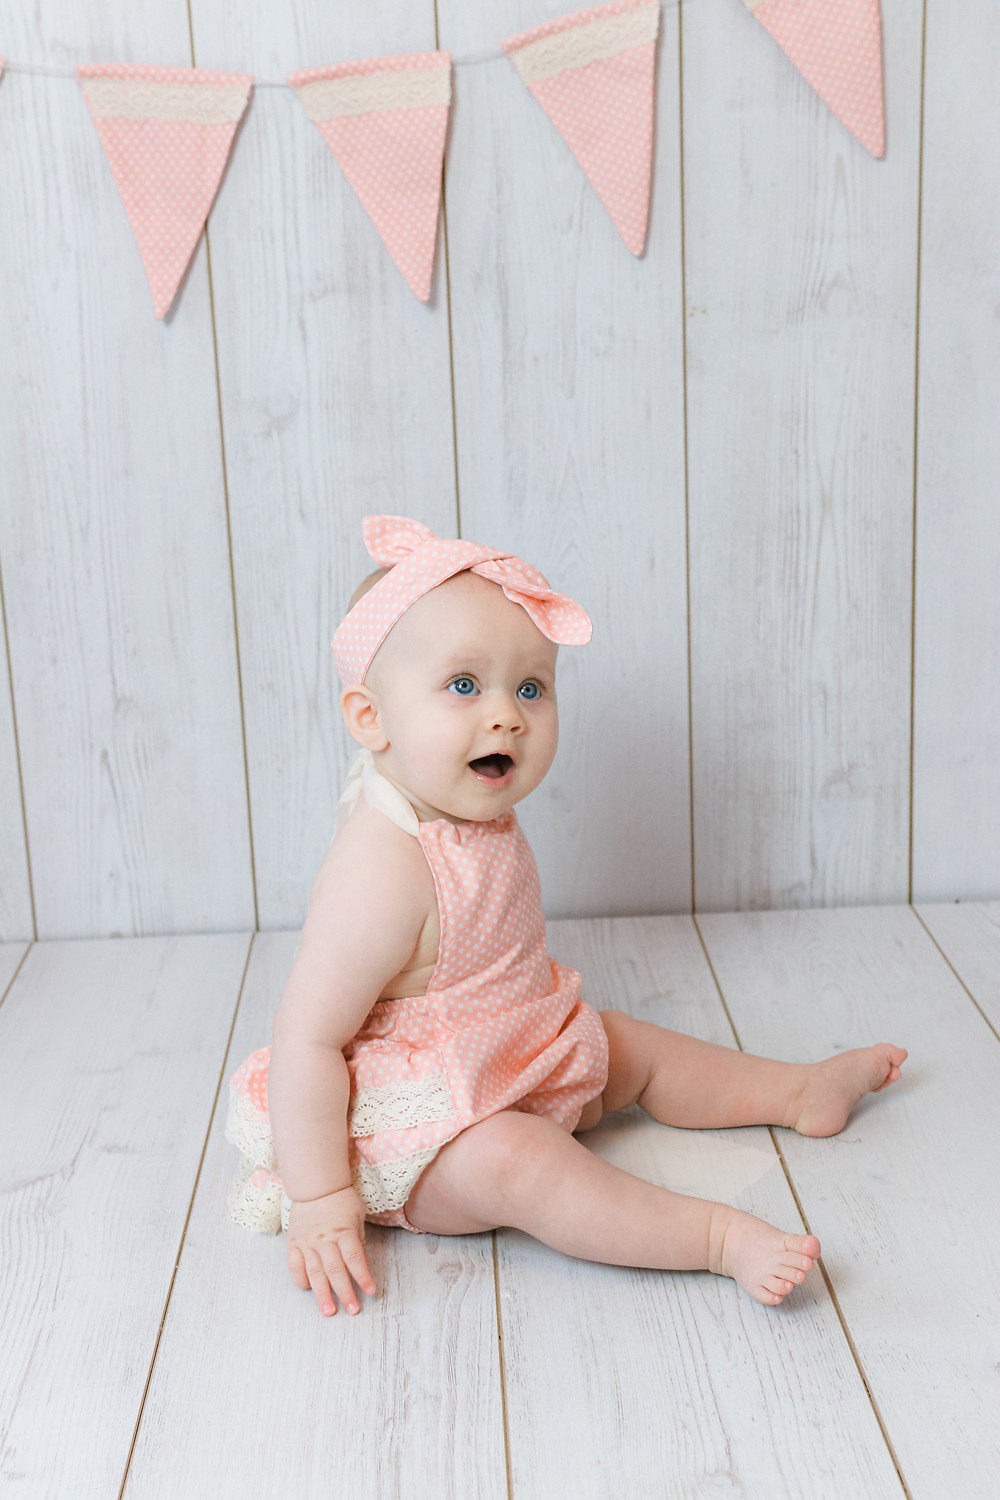 toddler girl sitting on white wooden floor wearing pink romper and matching headband